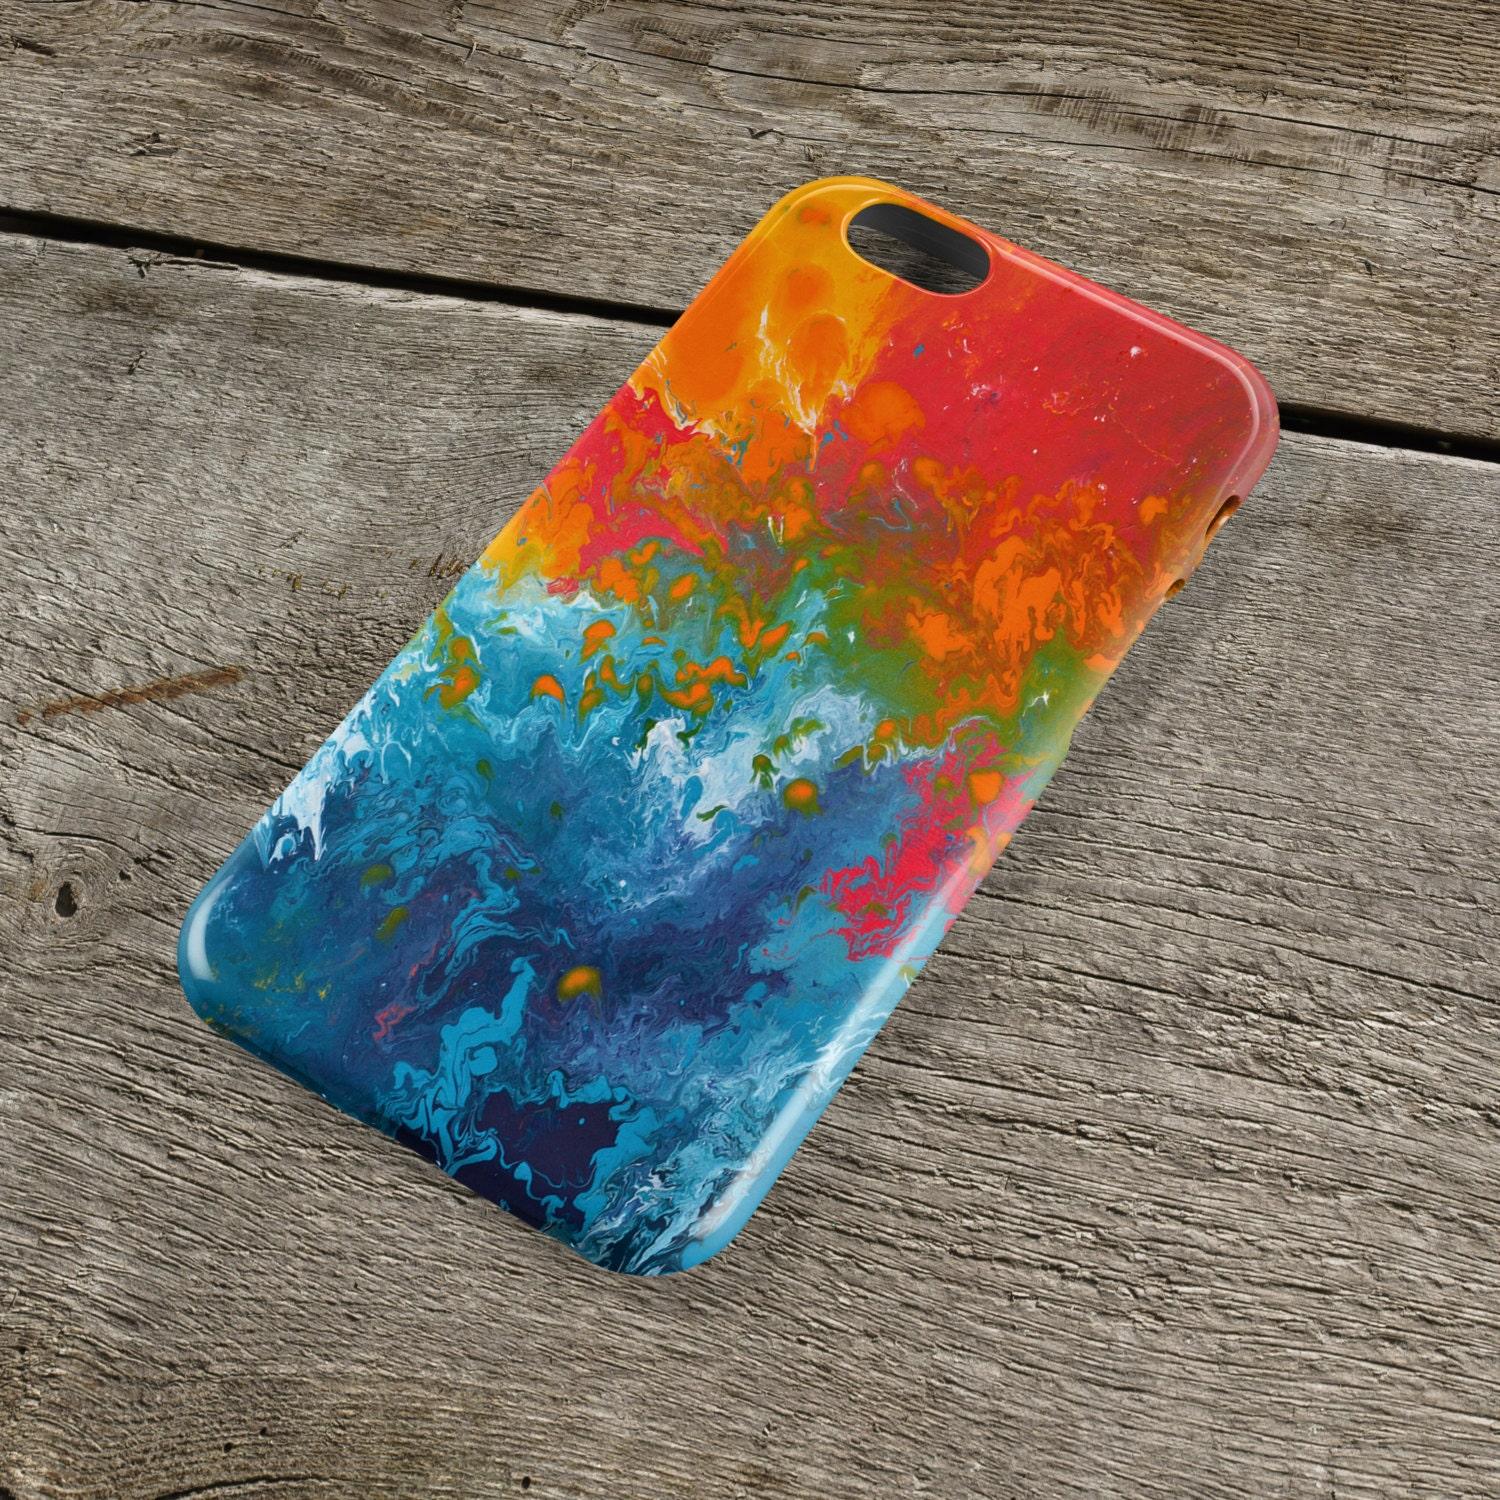 Incalescence Orange  Teal iPhone Case  Orange Turquoise and Blue Art Case for iPhones iP4 iP5SSE iP5C iP6S iP6S iPod Touch 5